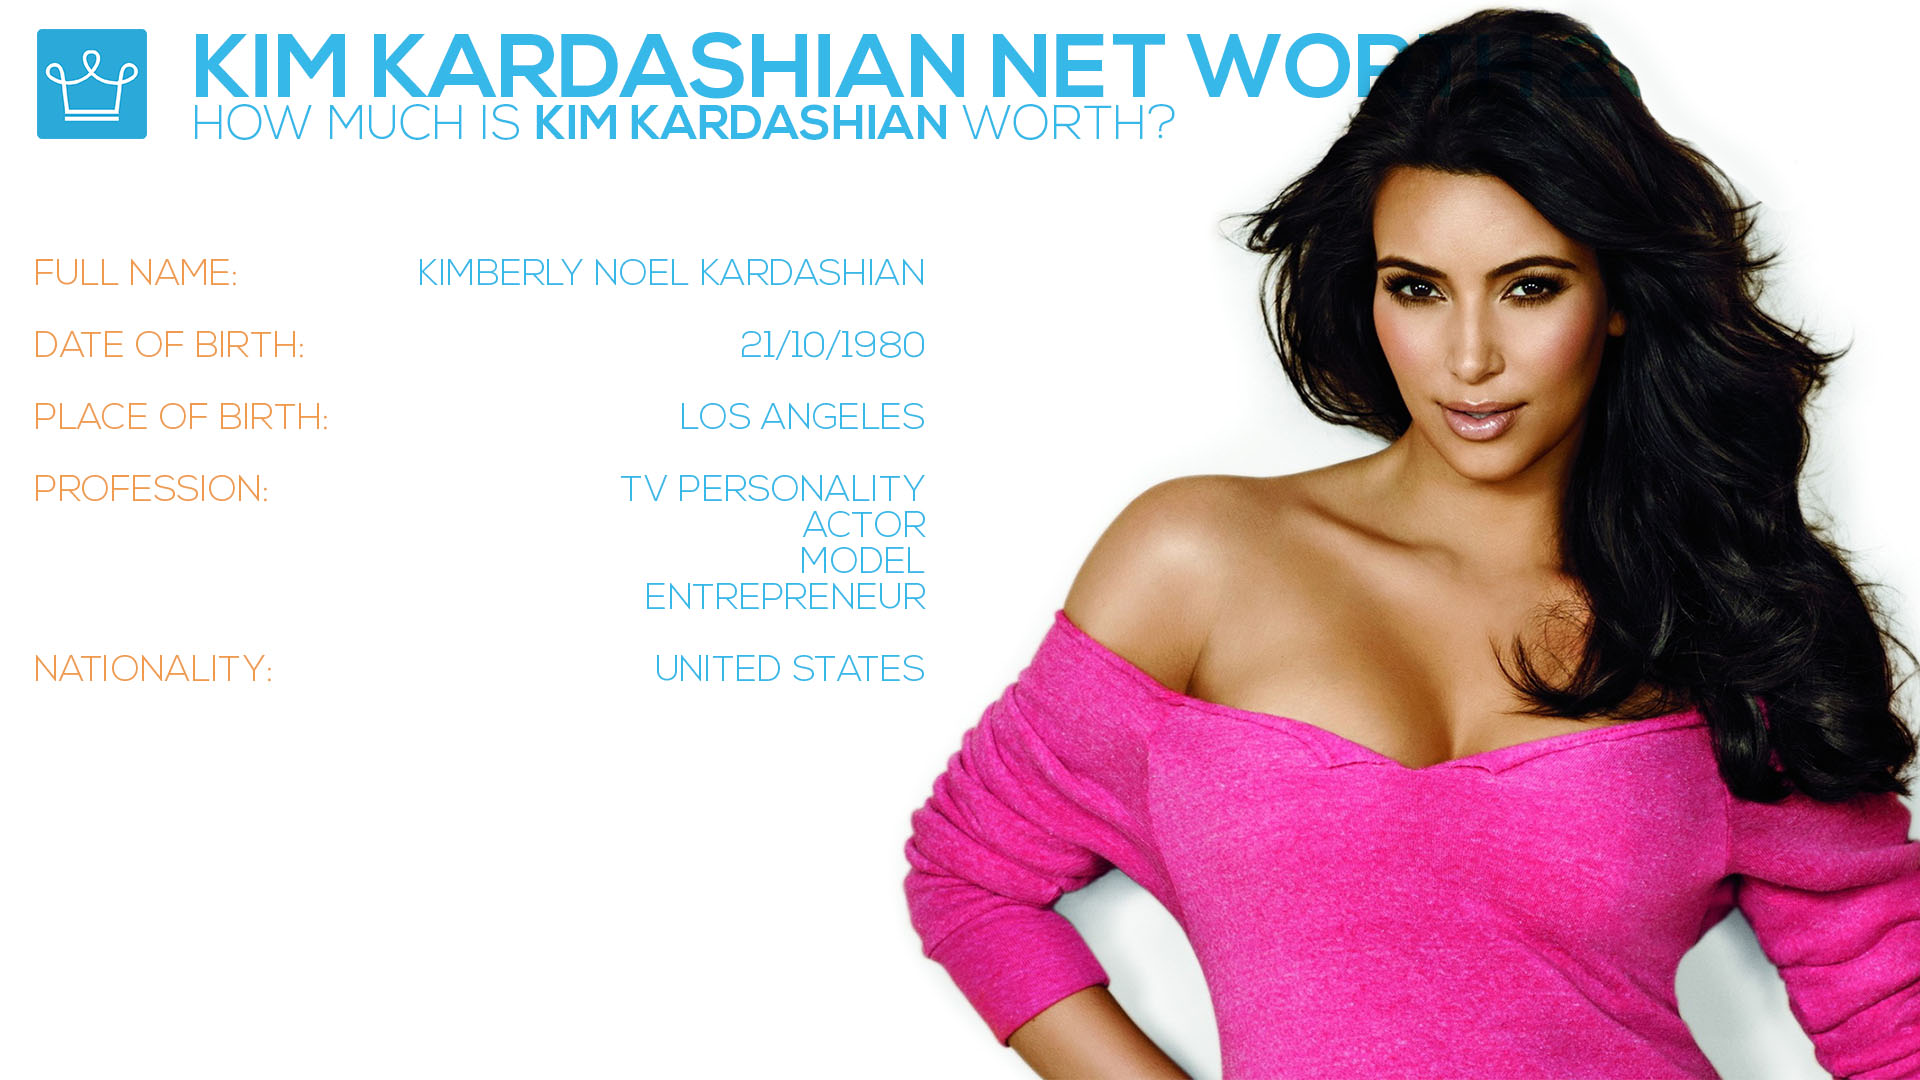 kim kardashian west net worth money fortune how rich wealth house car basic information